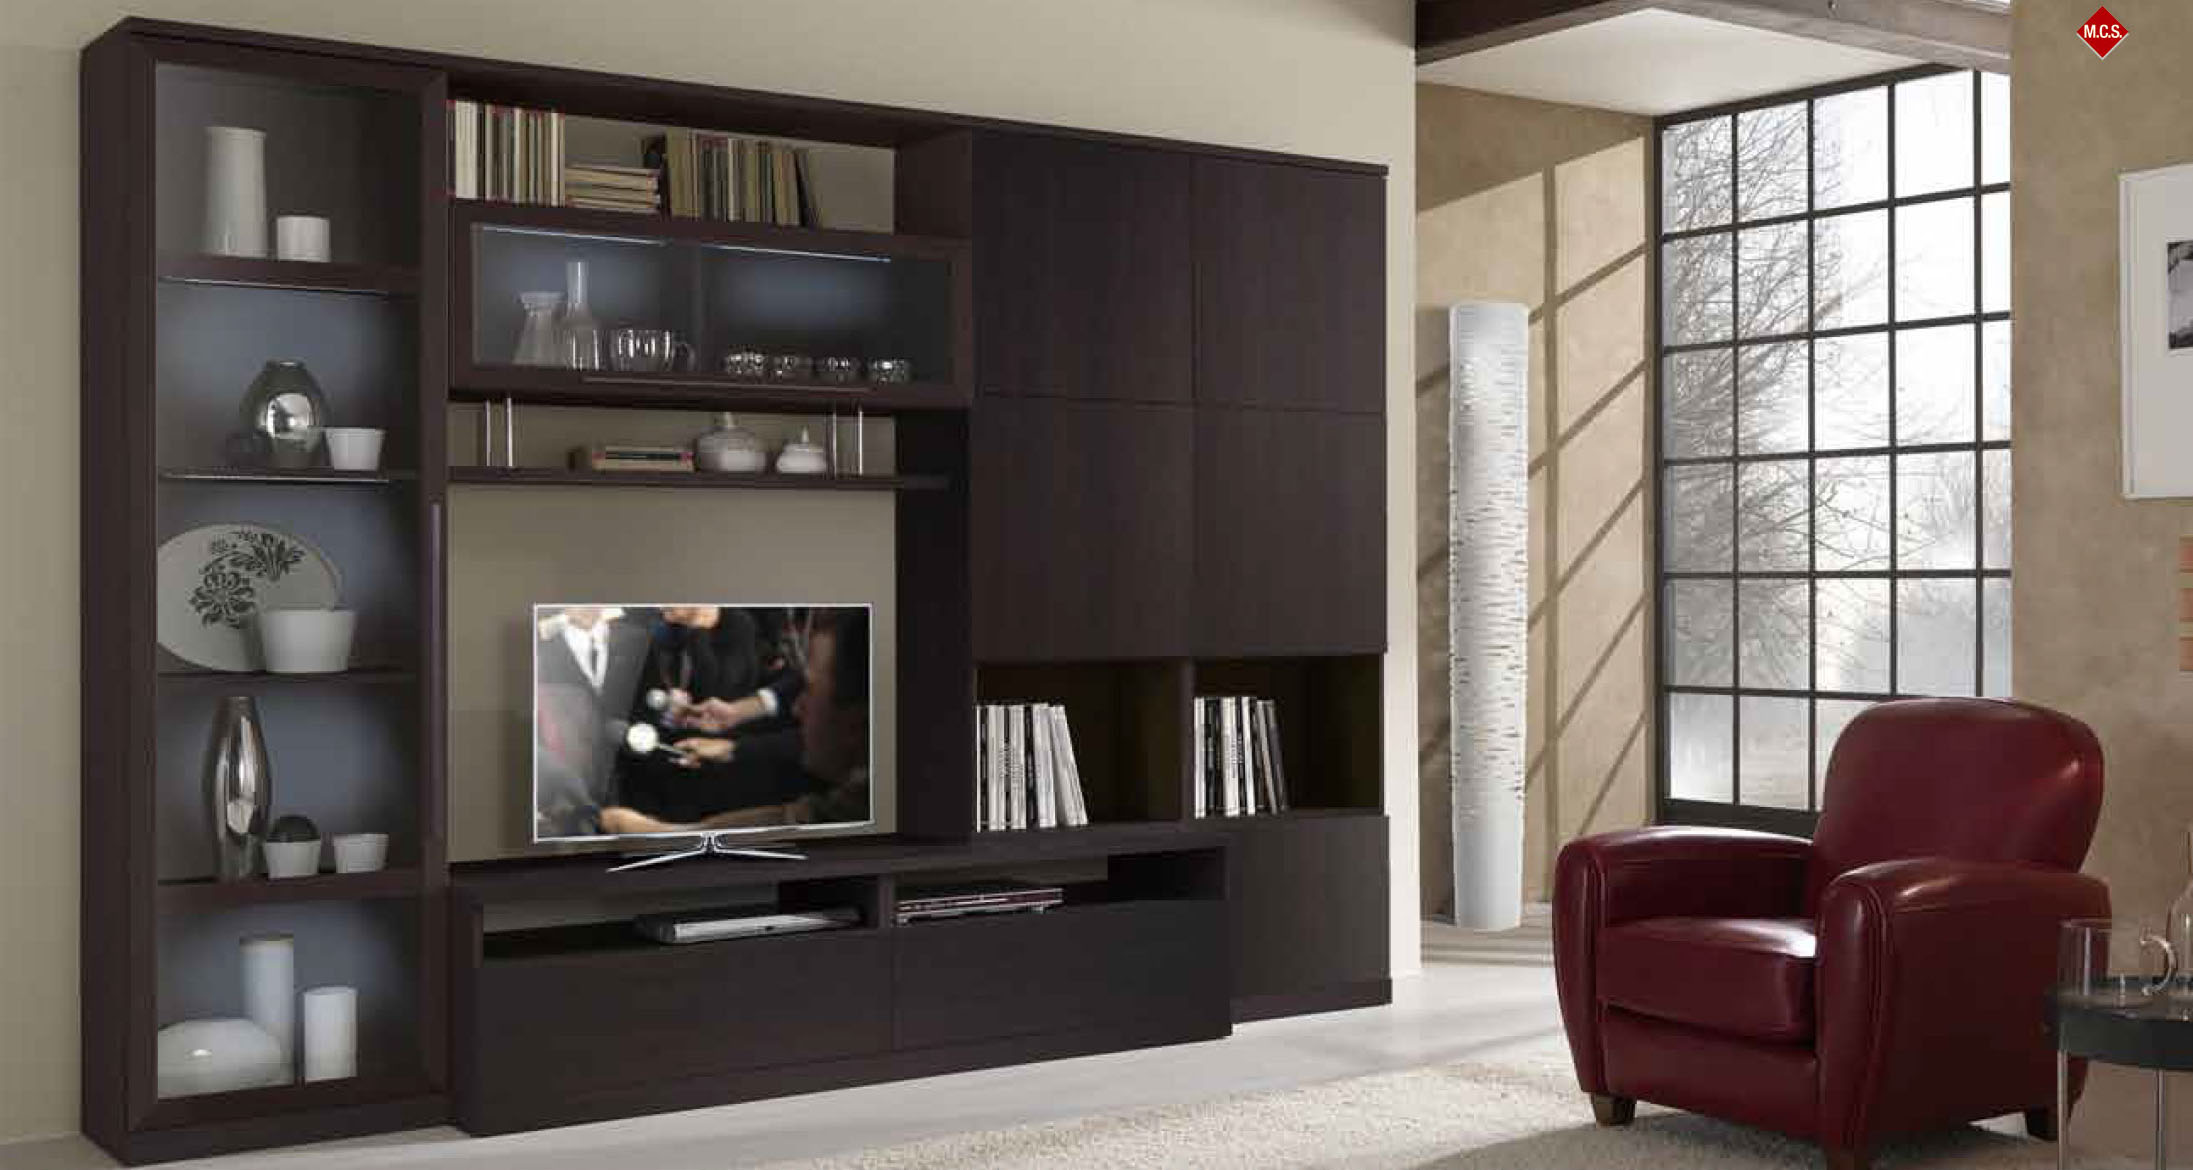 Media and wall units stylish accessories italian made contemporary huge wall entertainment